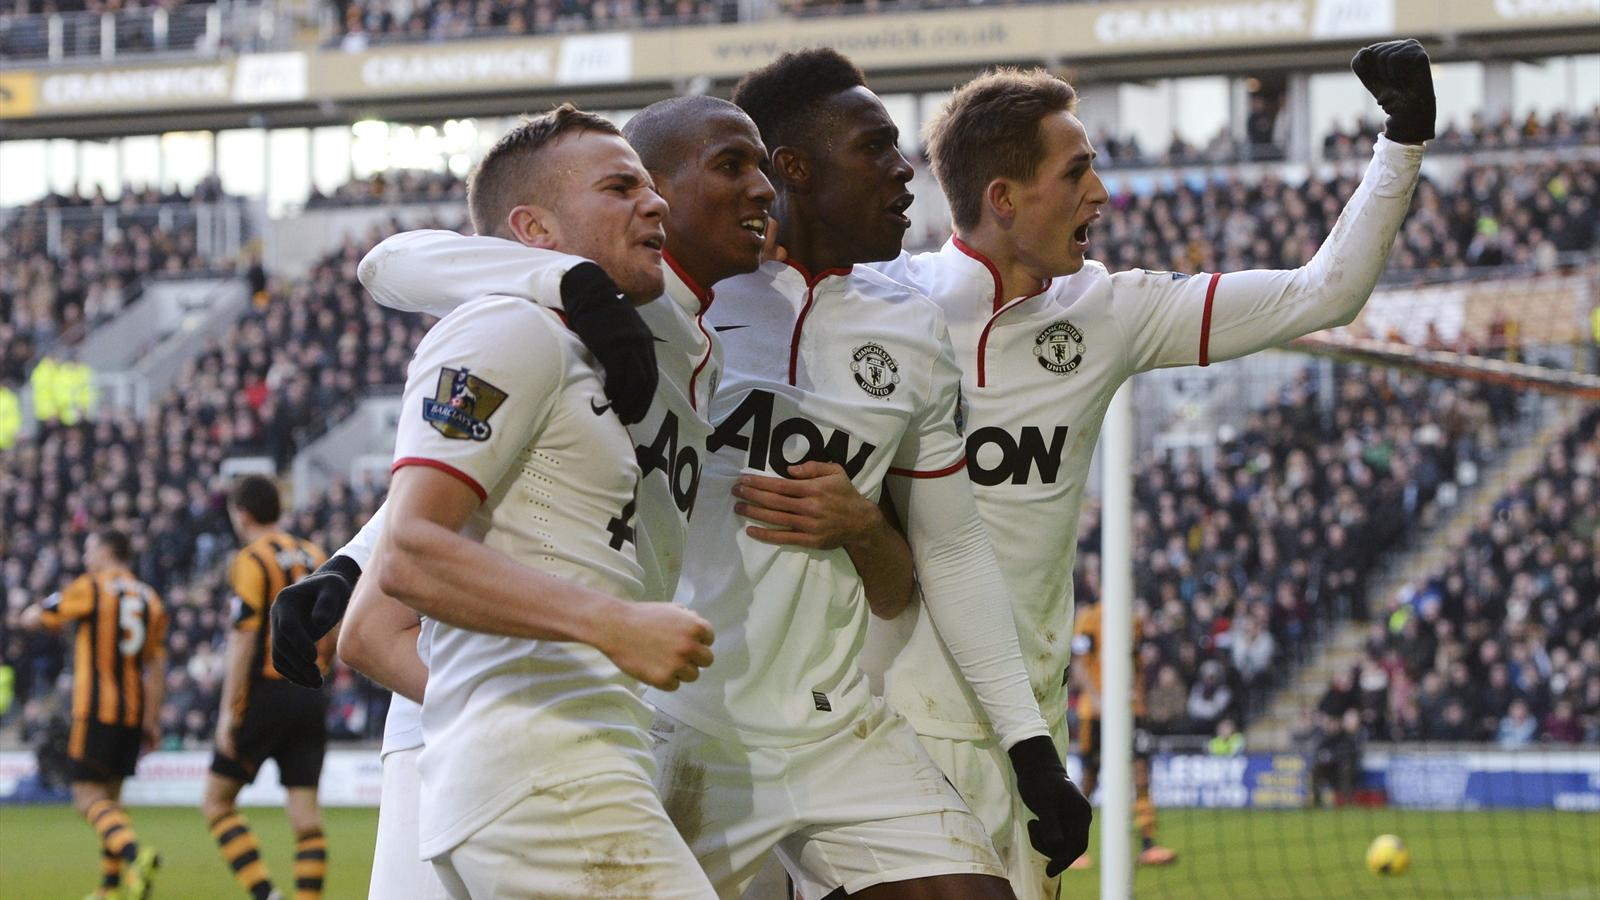 Manchester United players (L-R) Tom Cleverley, Ashley Young, Danny Welbeck and Adnan Januzaj celebrate